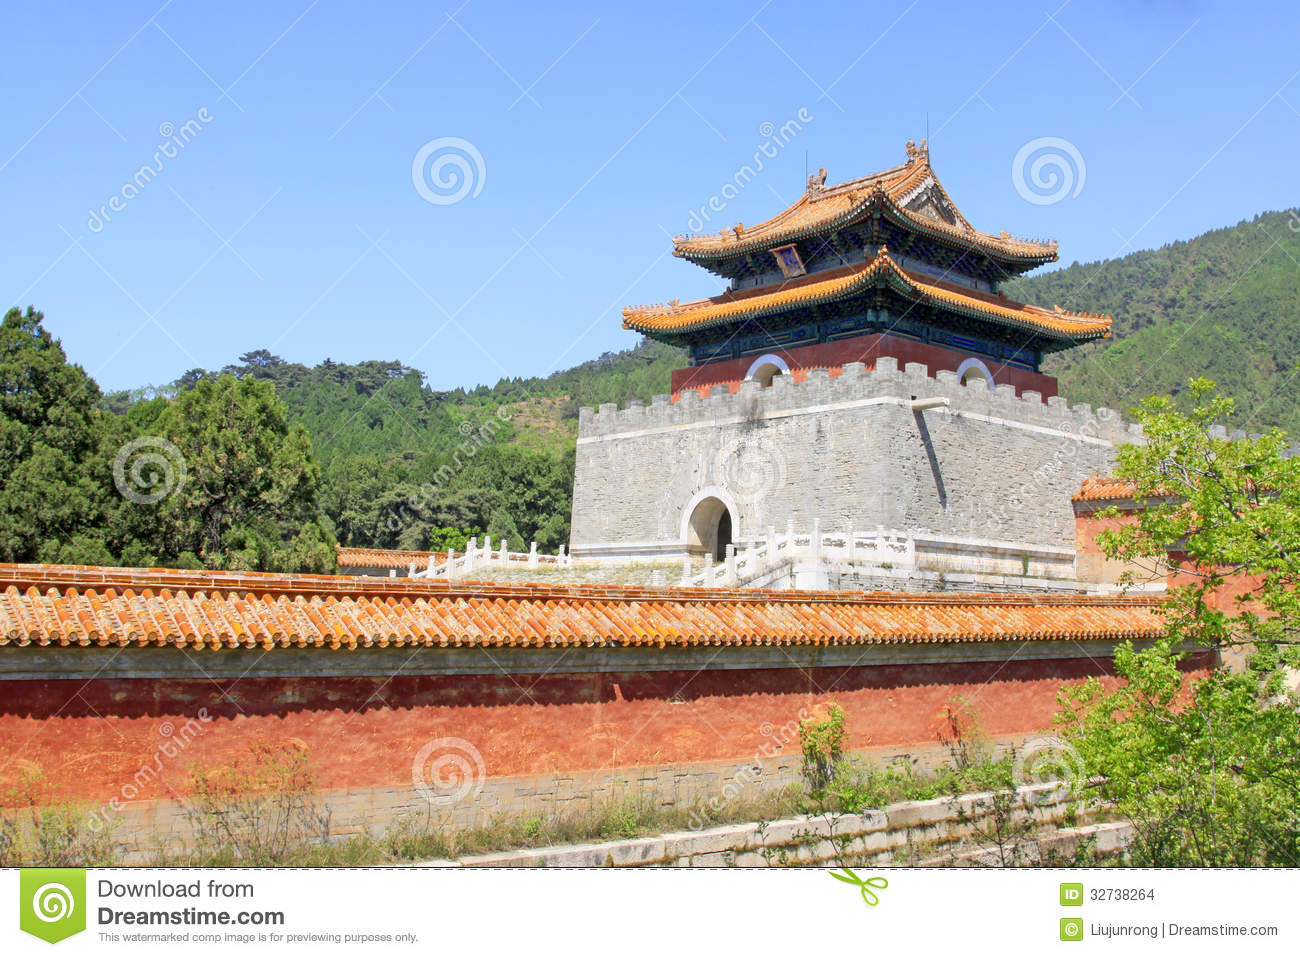 architecture scenery in the Eastern Royal Tombs of the Qing Dynasty    Qin Dynasty Architecture